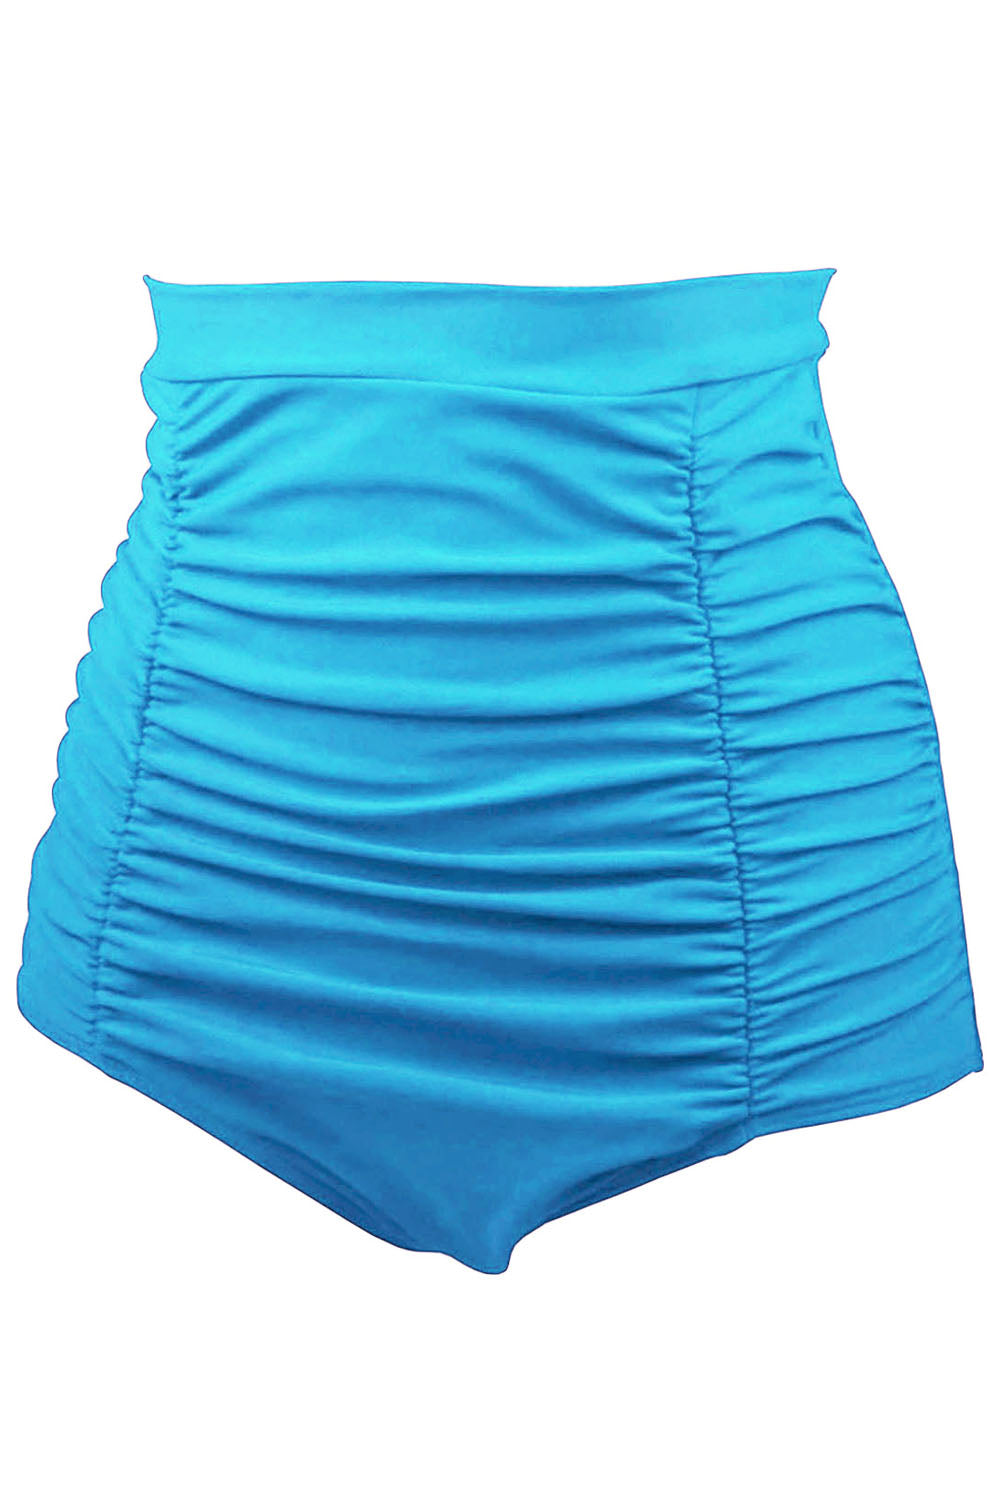 Sky Blue Retro High Waisted Swim Short